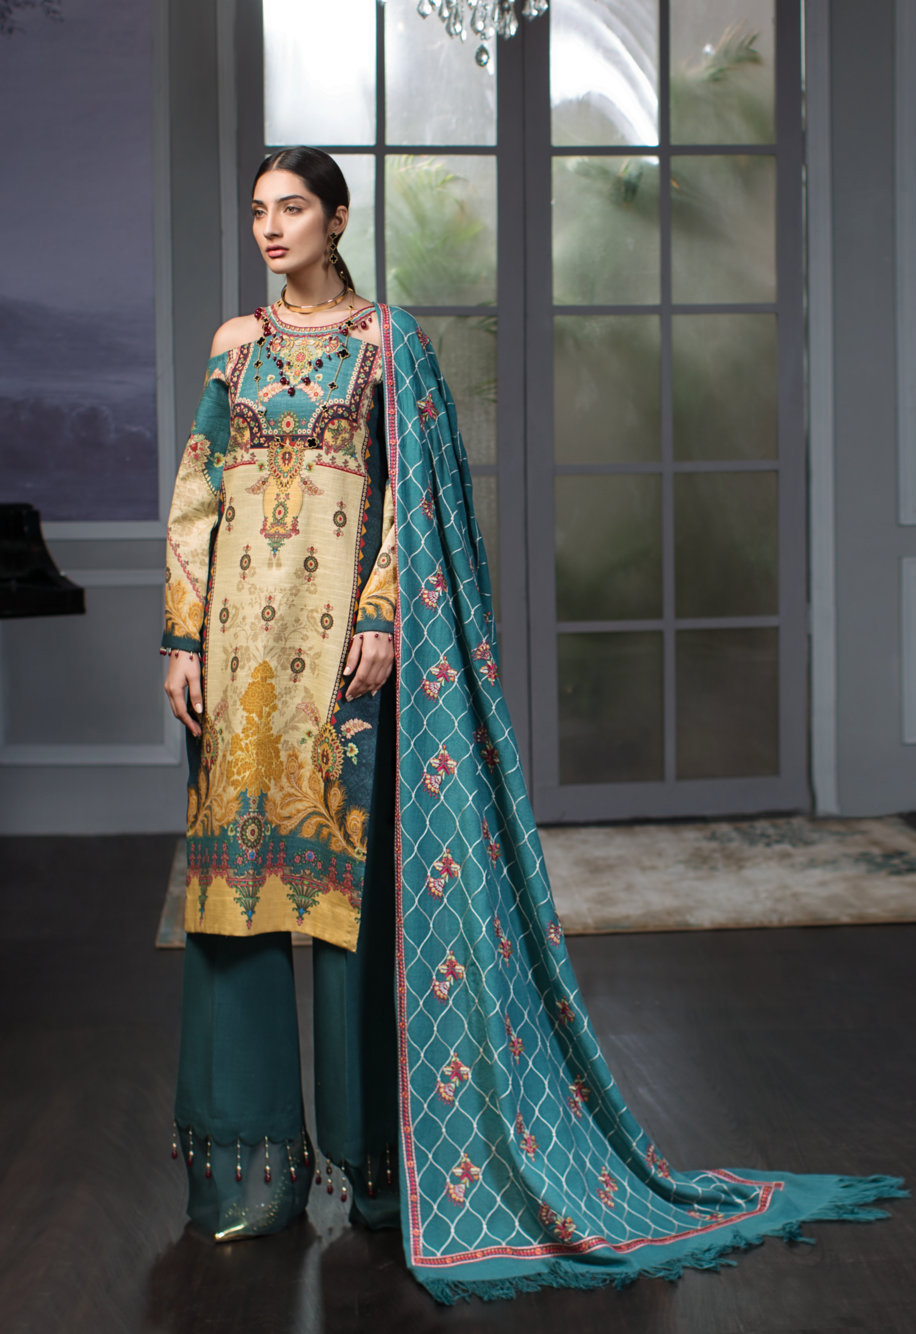 f21d47c059 The post NOOR Winter Shawl Collection 2019 By Saadia Asad appeared first on PK  Vogue.